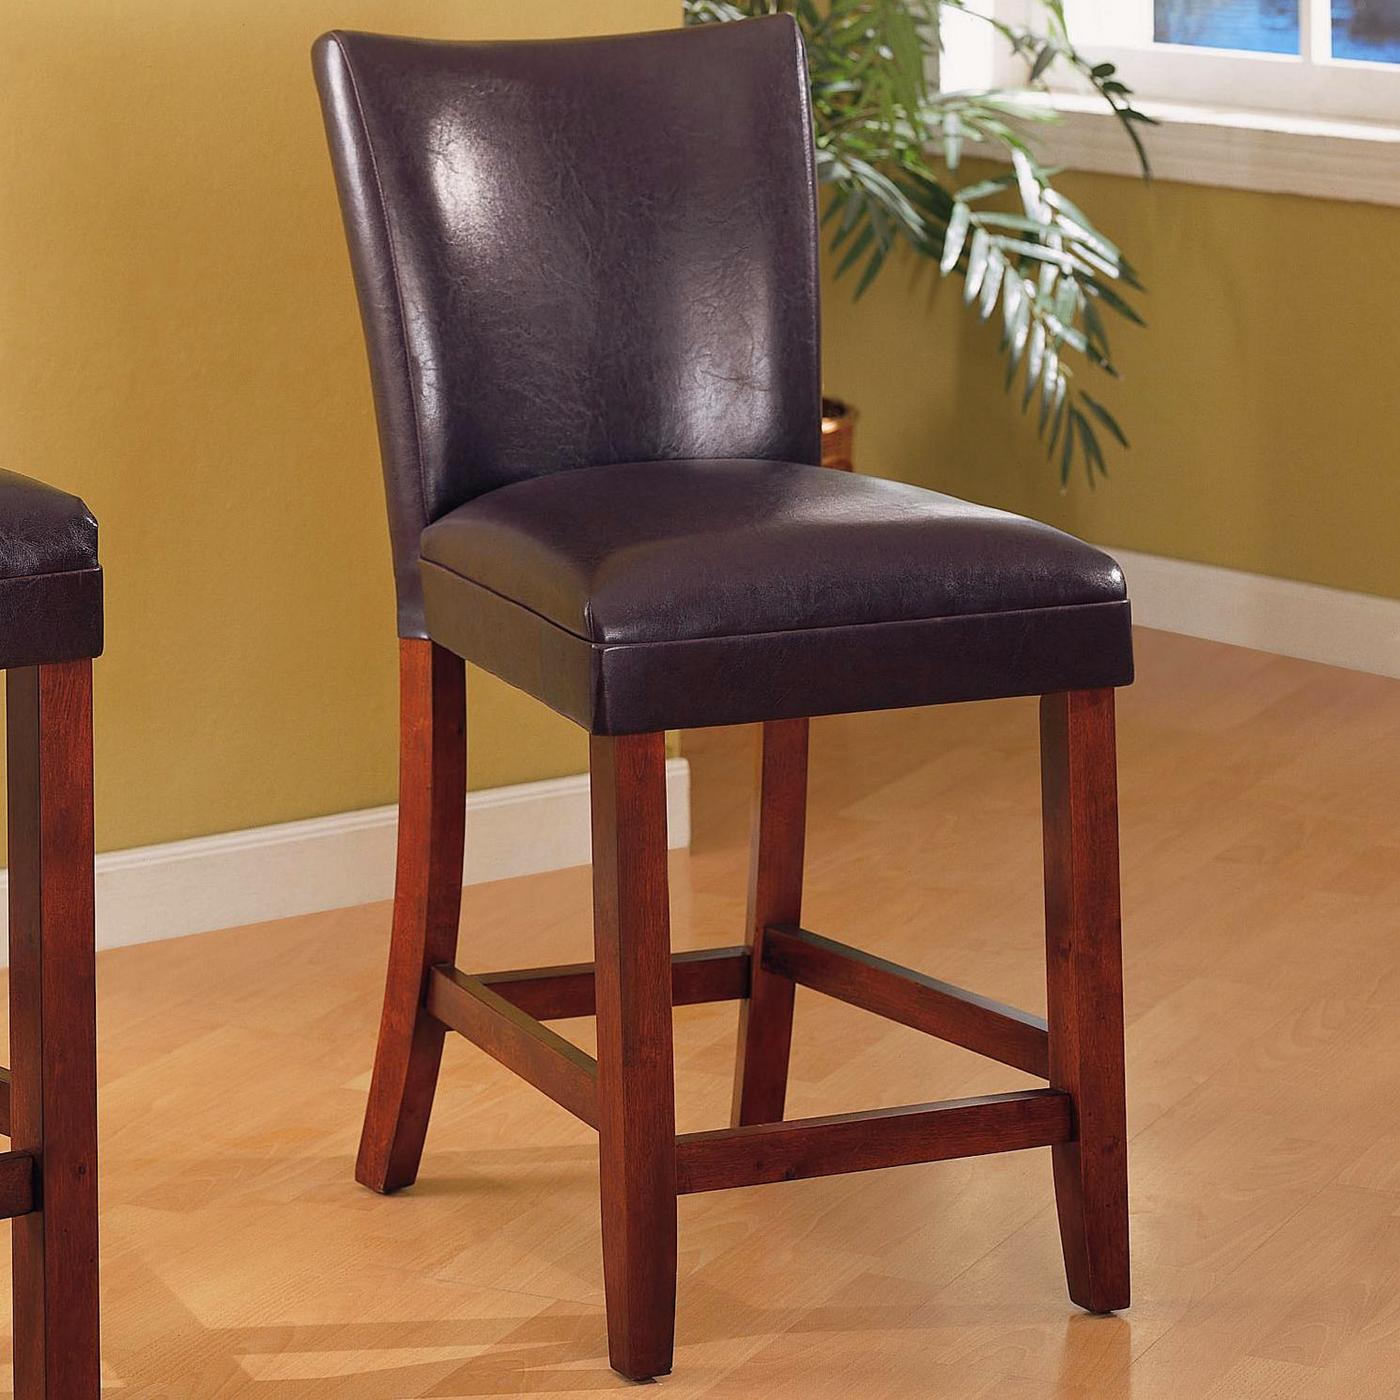 telegraph set of 2 brown fabric cherry bar stools. Black Bedroom Furniture Sets. Home Design Ideas